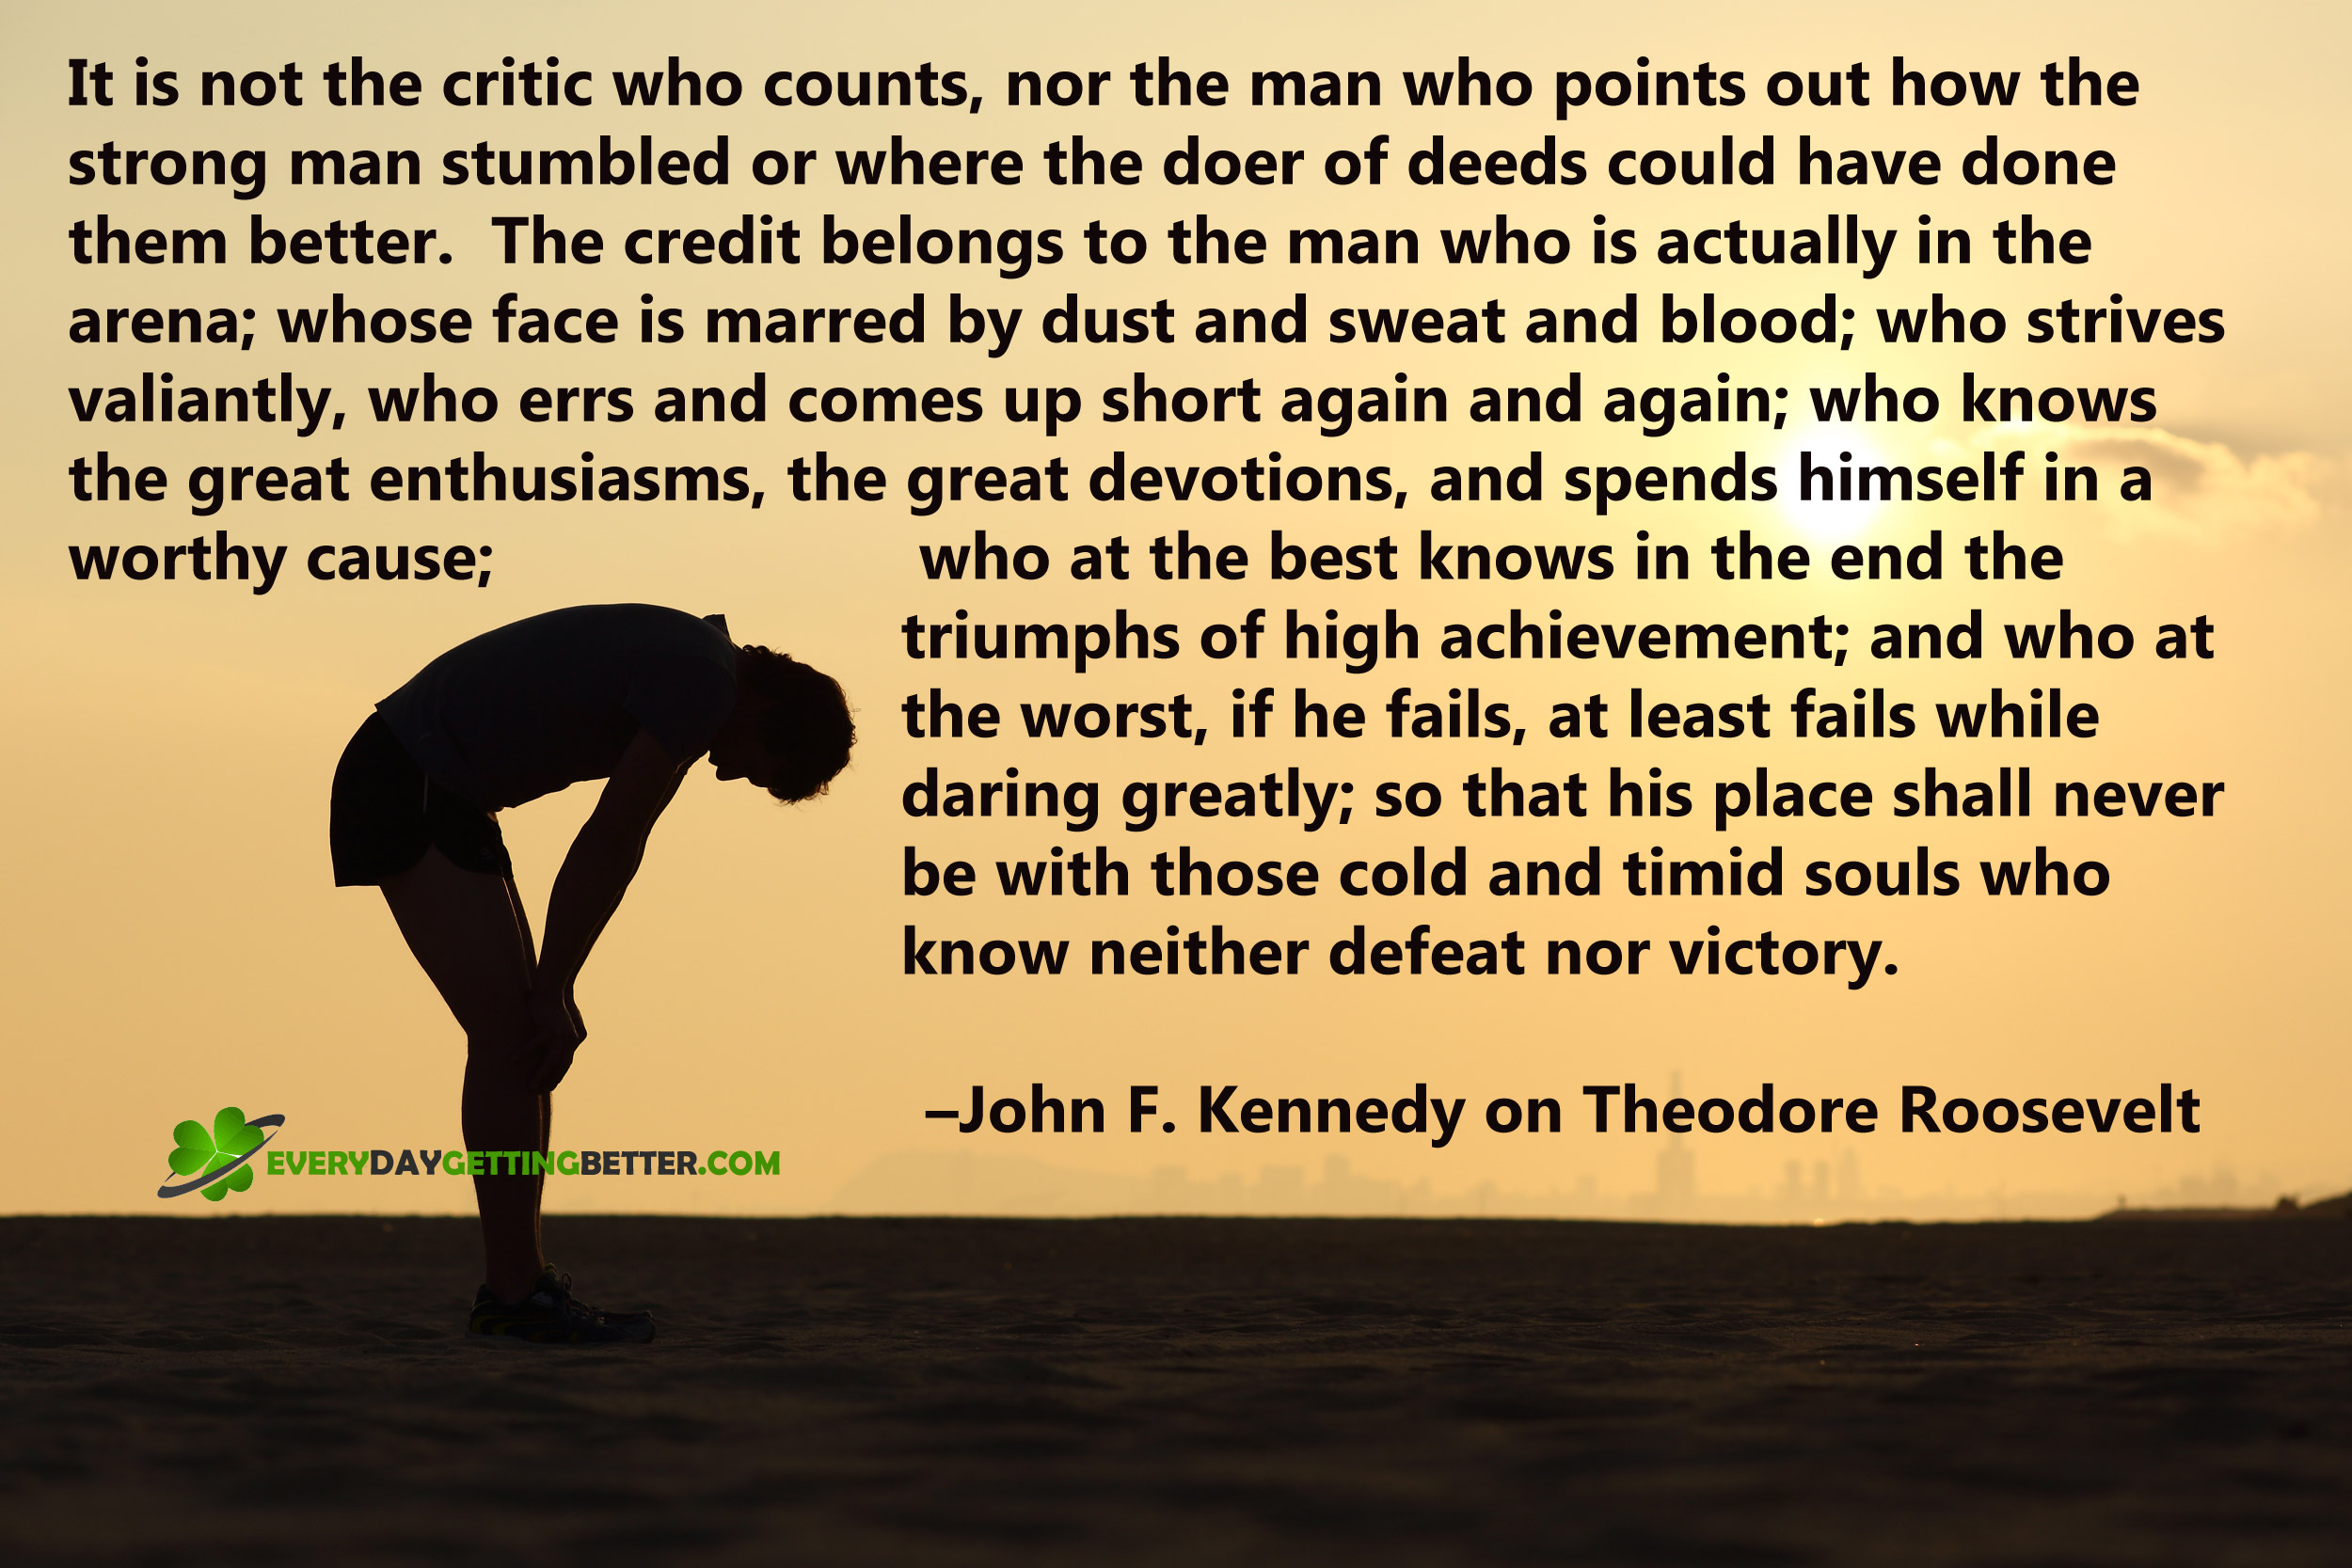 Teddy Roosevelt Quotes Wallpaper Daring Greatly Every Day Getting Better